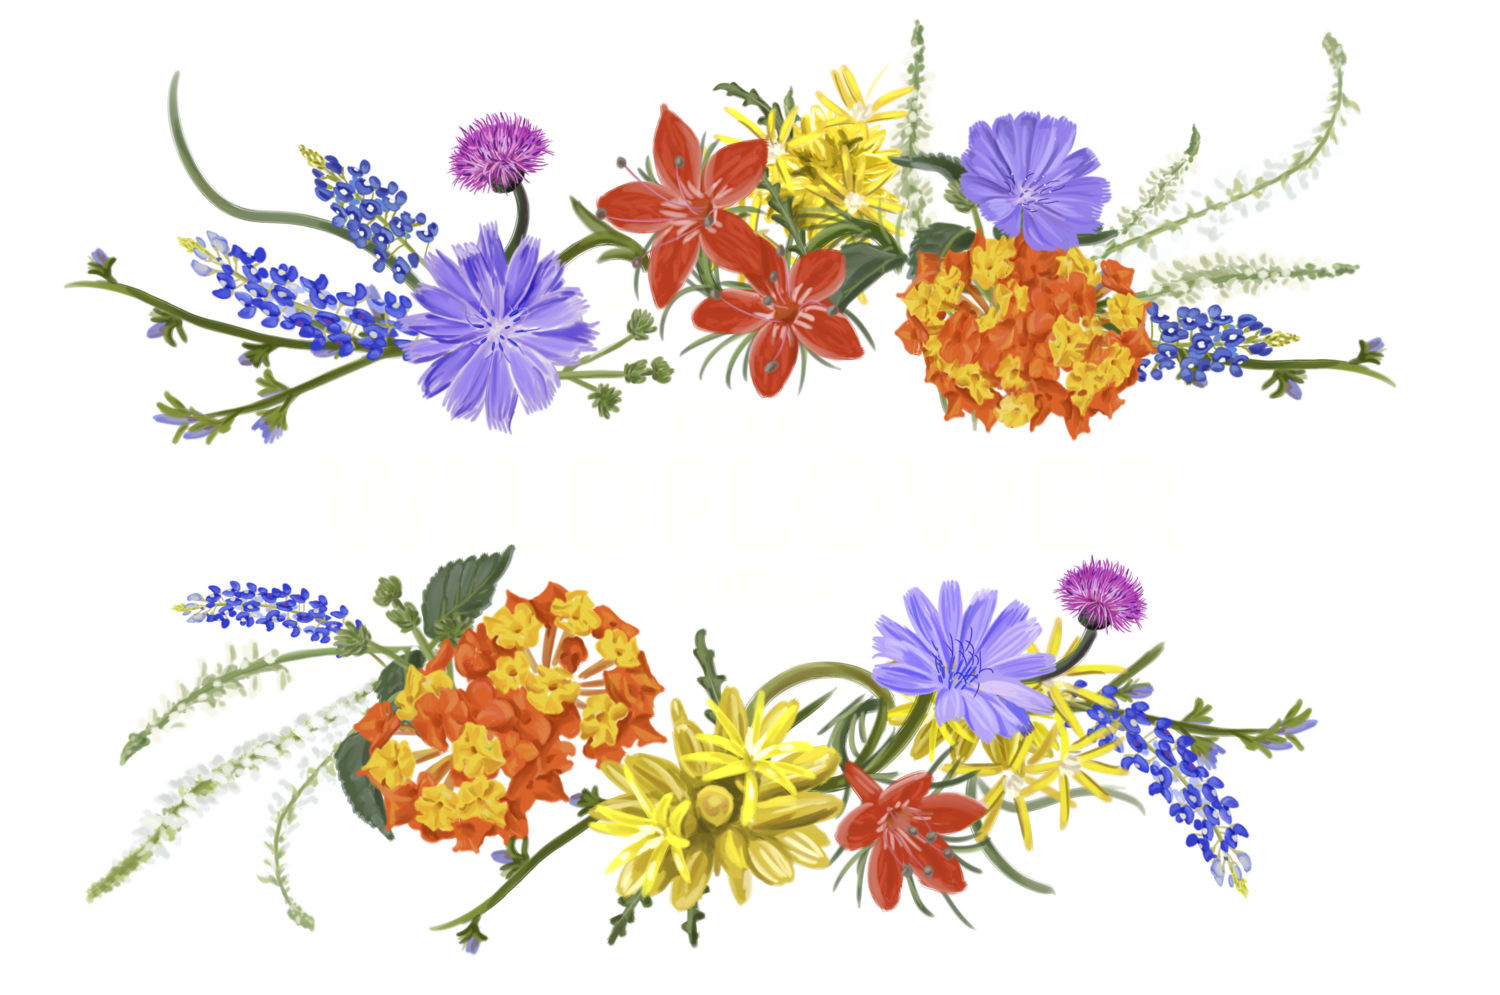 Snapdragon flower clipart picture freeuse download Wildflower Watercolour Flowers Vodka Clip art - wildflower heading ... picture freeuse download